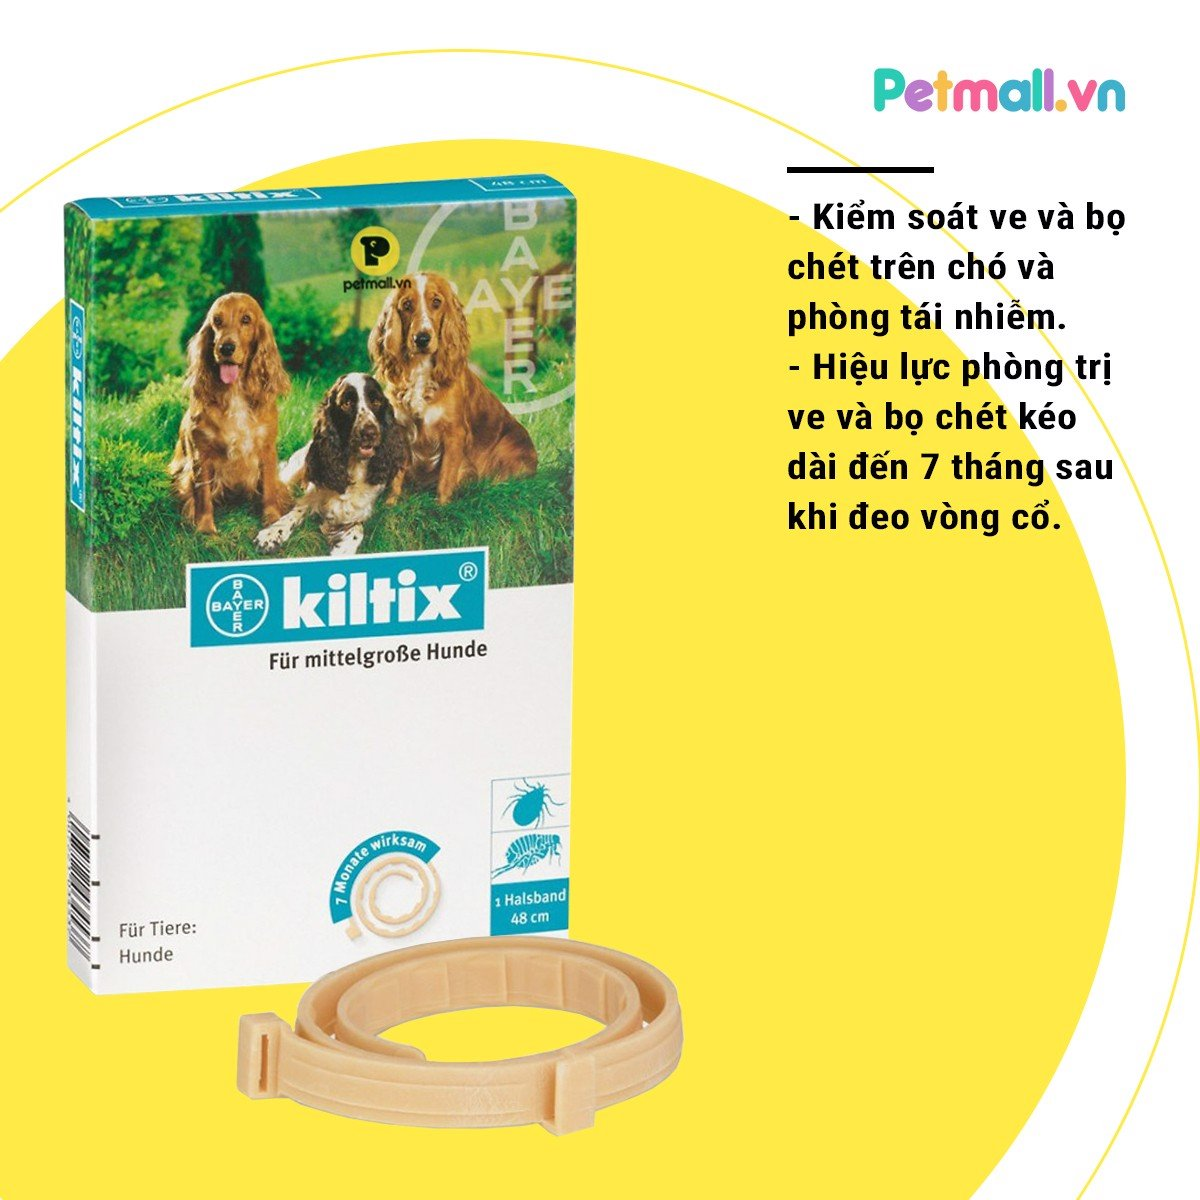 KILTIX Collar for dog medium size - 48cm